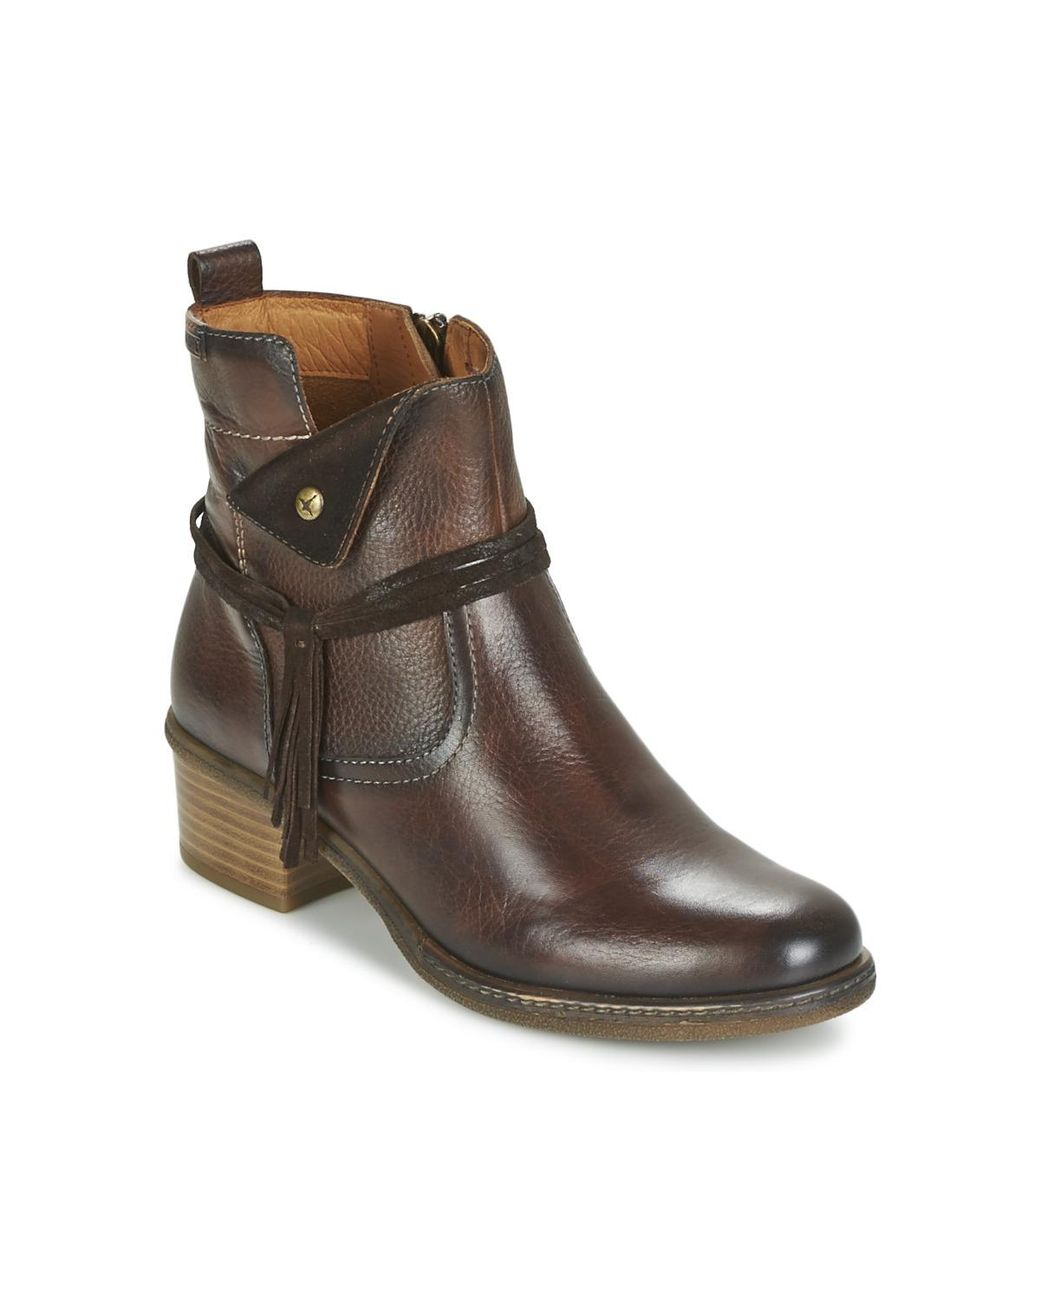 f2471fa35ec6c Pikolinos Zaragoza W9h Women's Low Ankle Boots In Brown in Brown ...